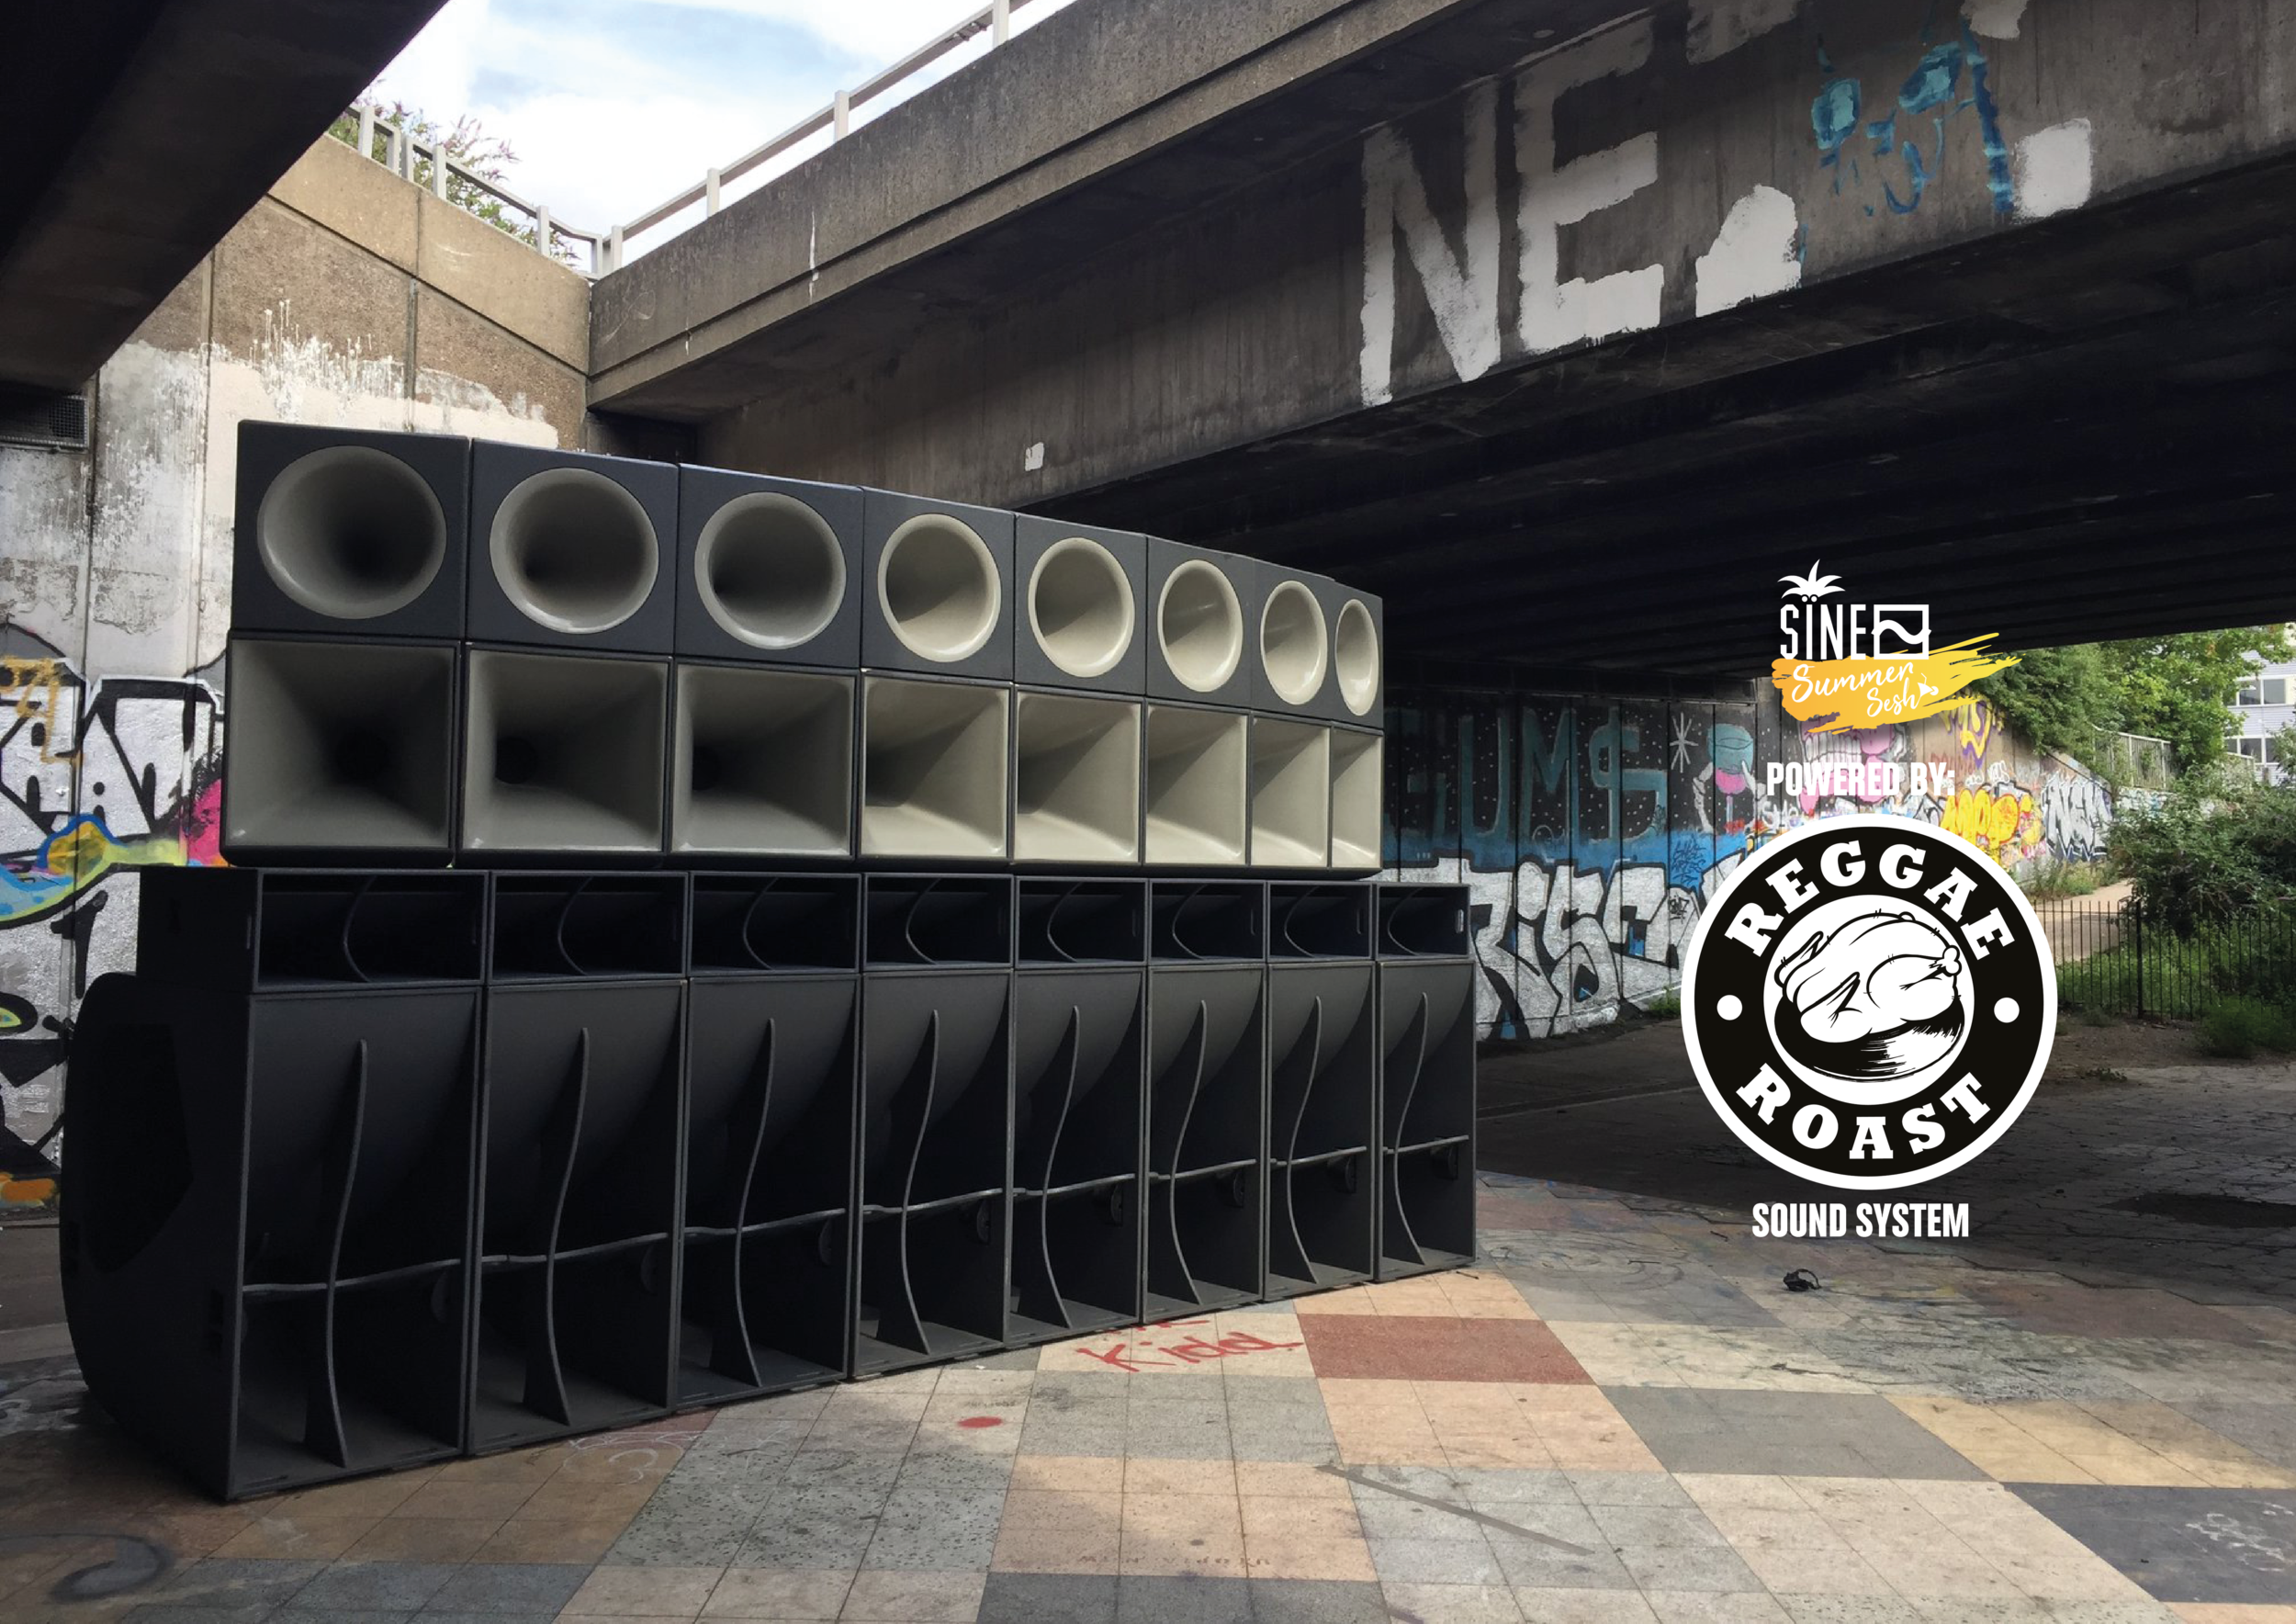 The Reggae Roast Sound System will be powering out summer rave at STYX London on 2nd June. Click  HERE  for more info.